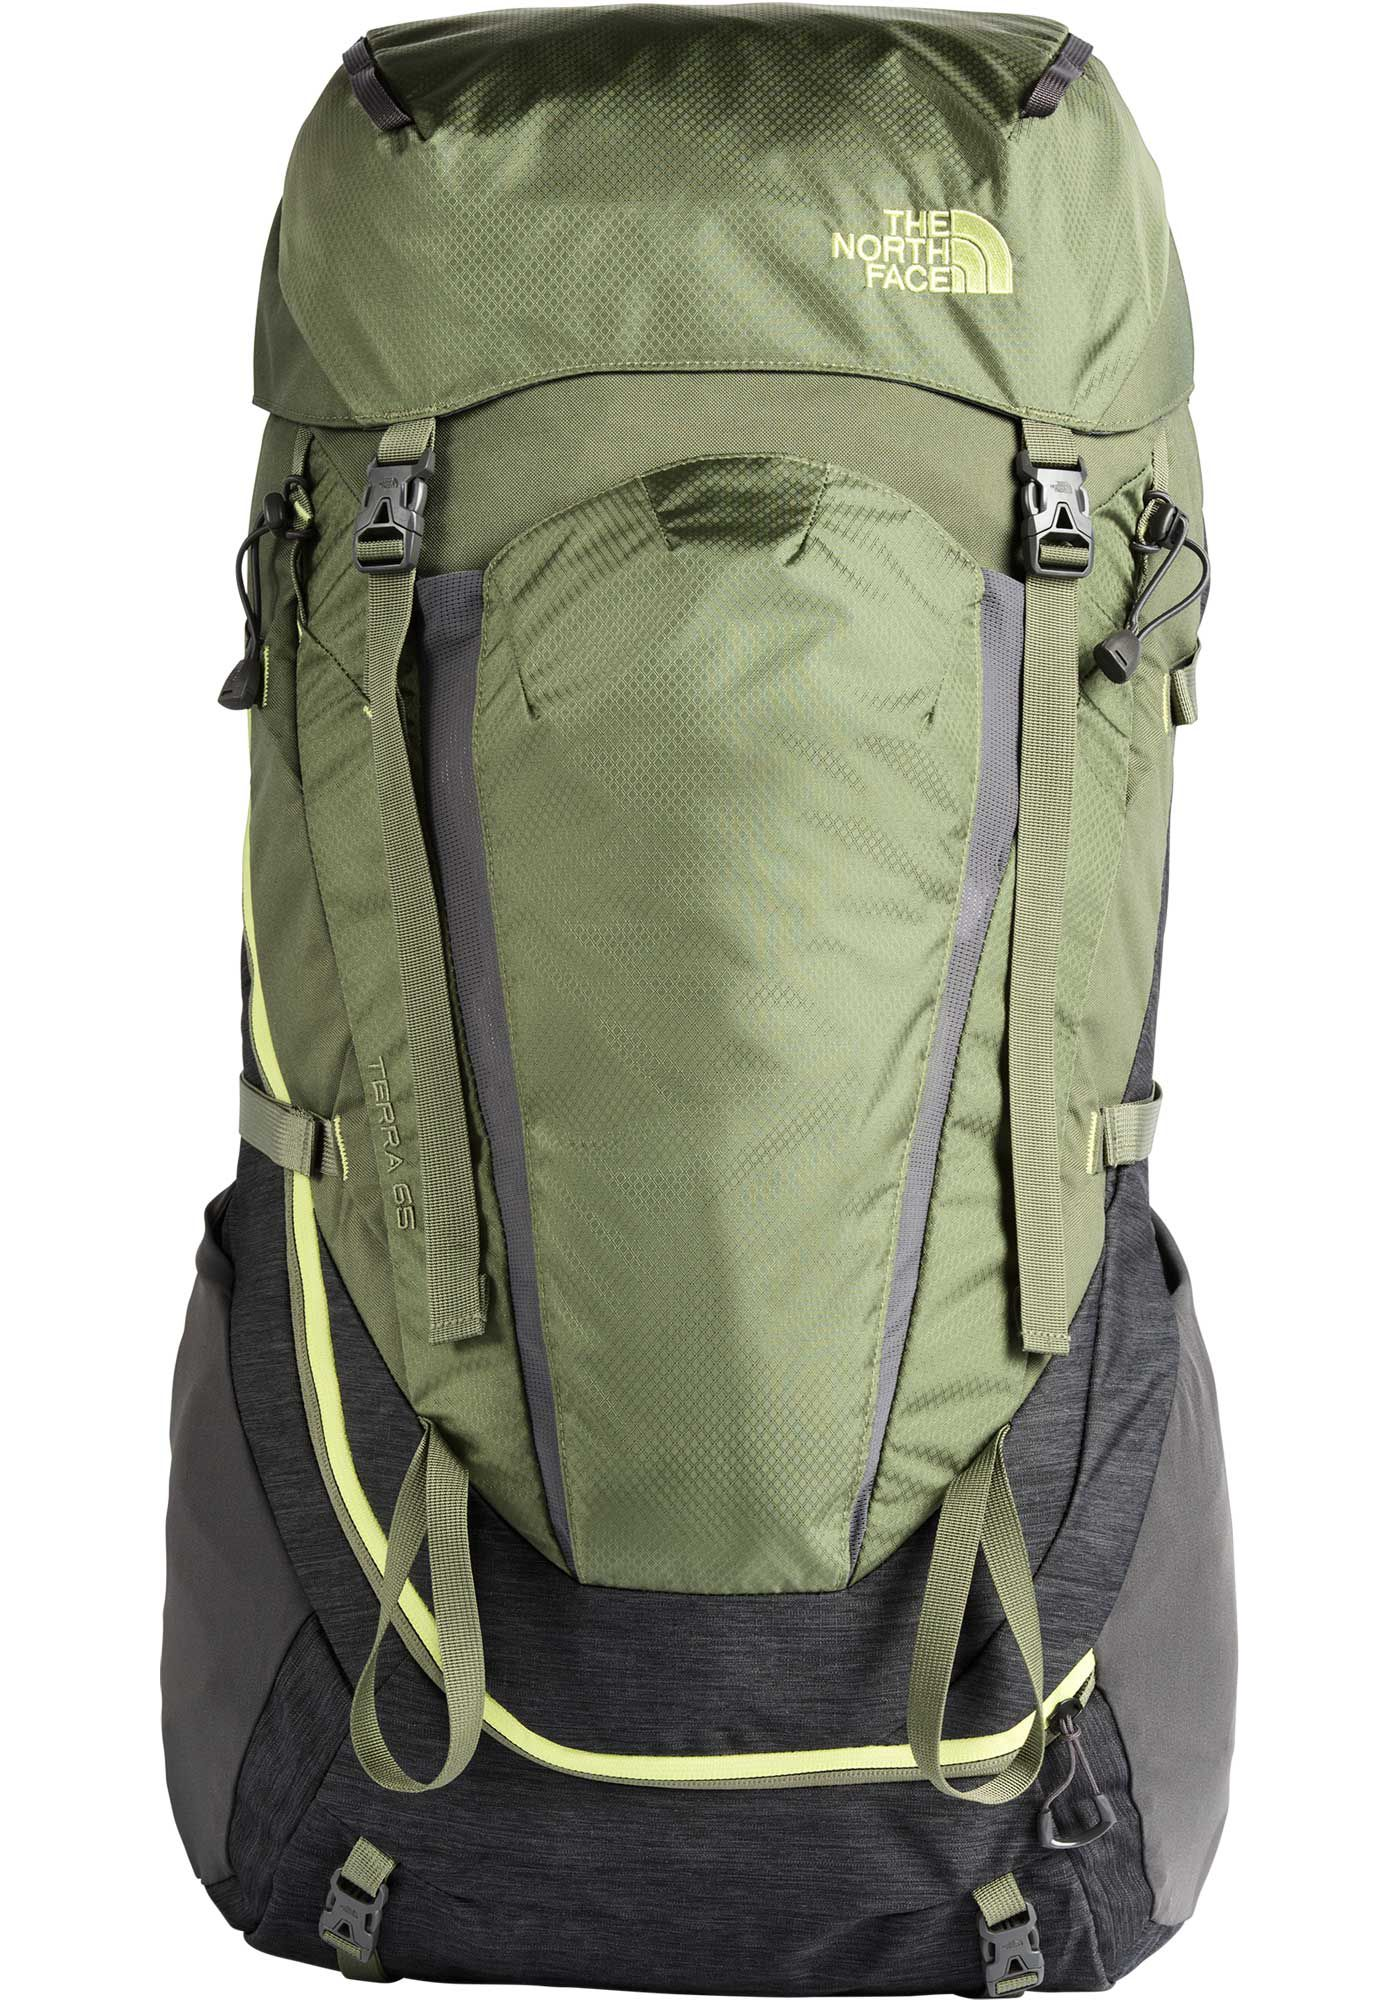 North Face Women's Terra 65 Backpack